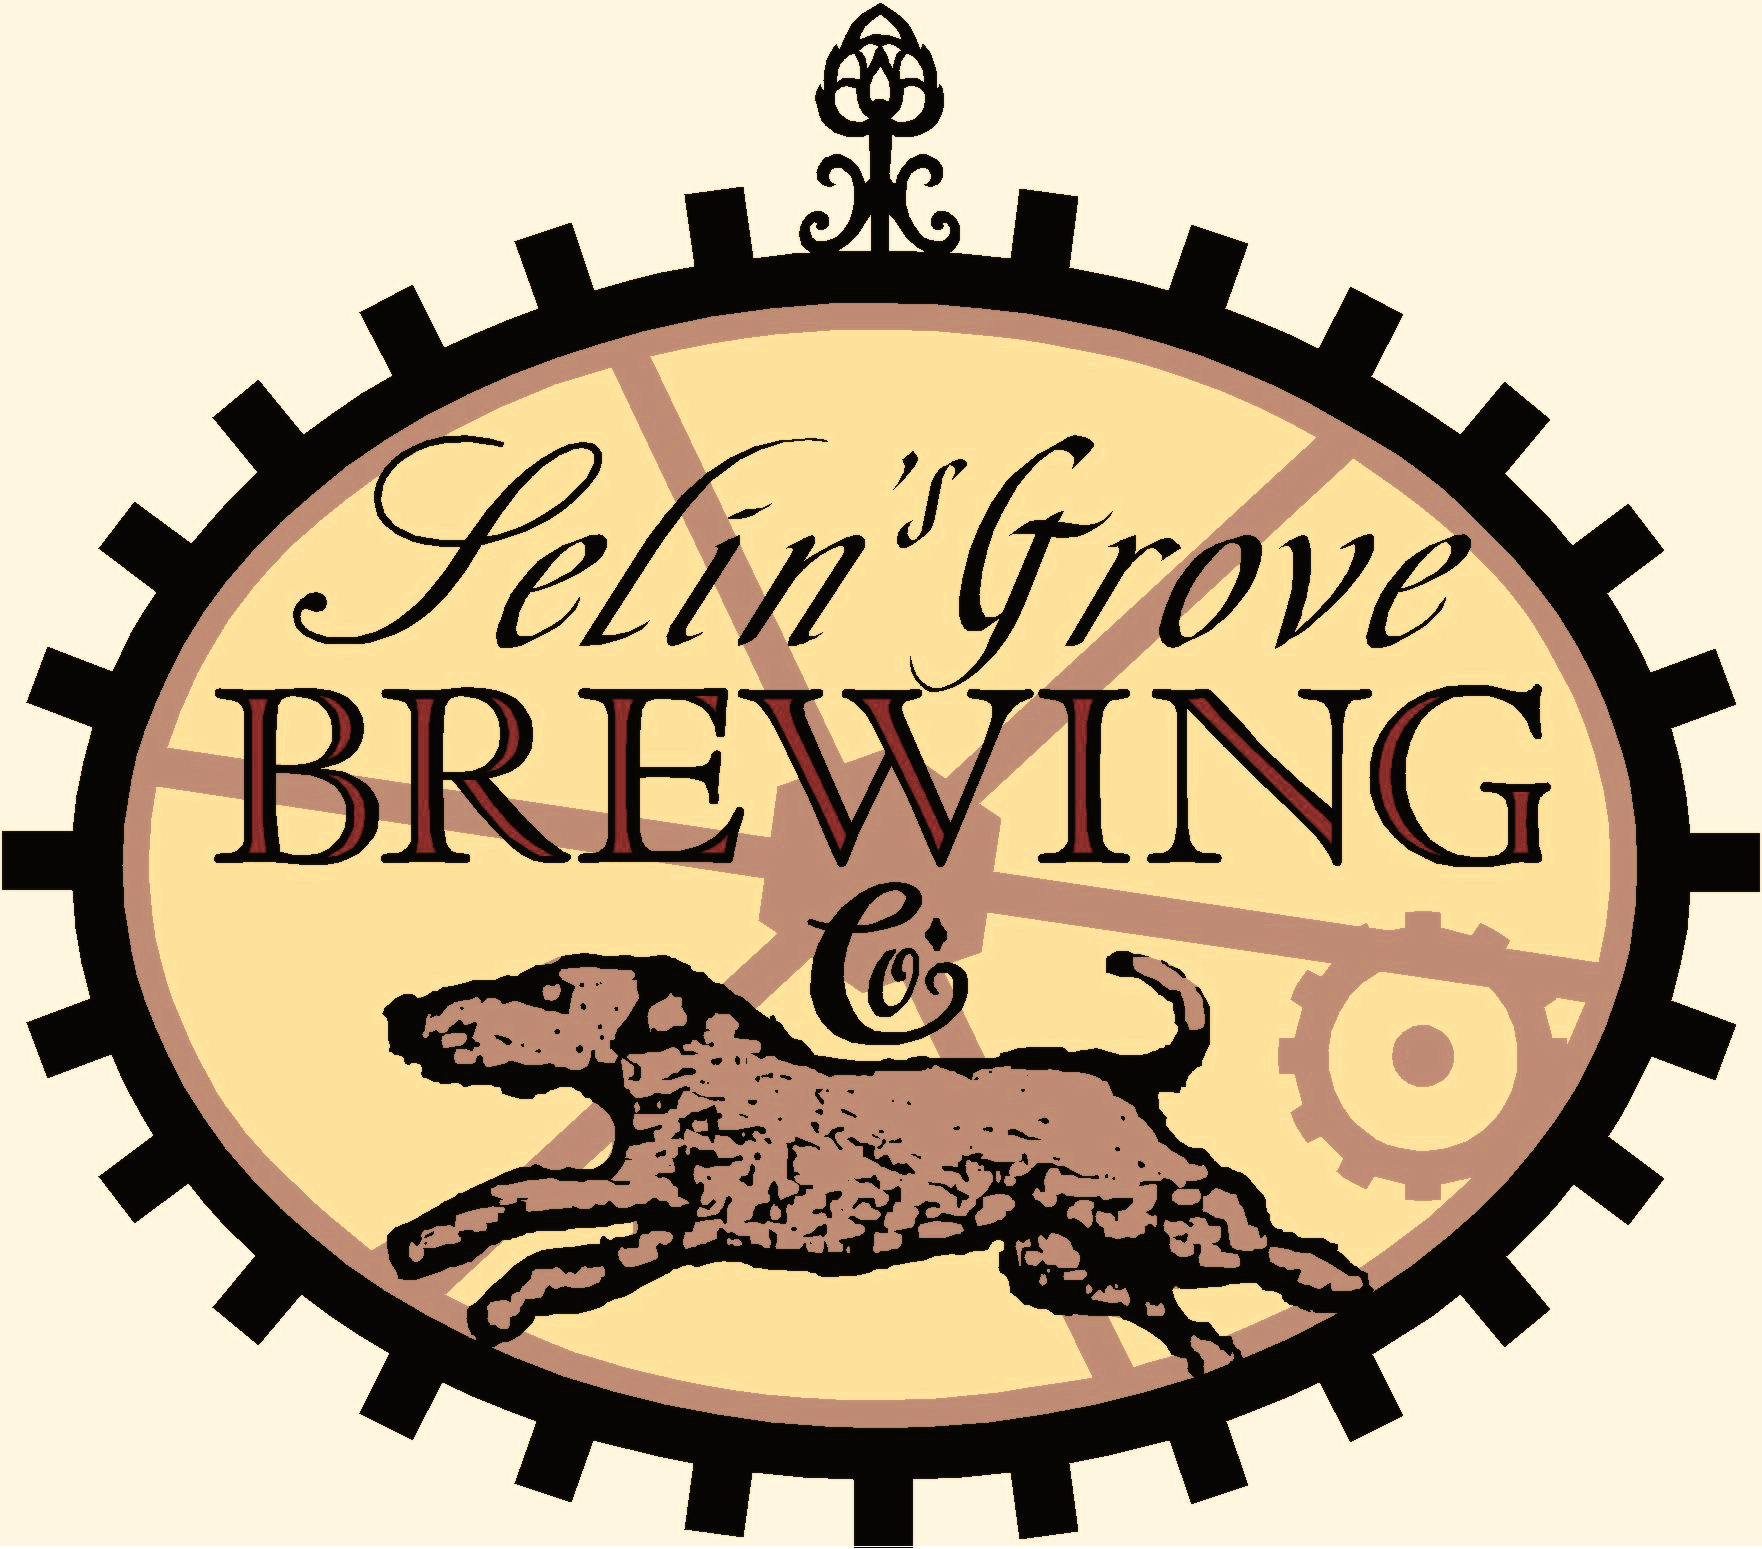 Selins Grove Brewing